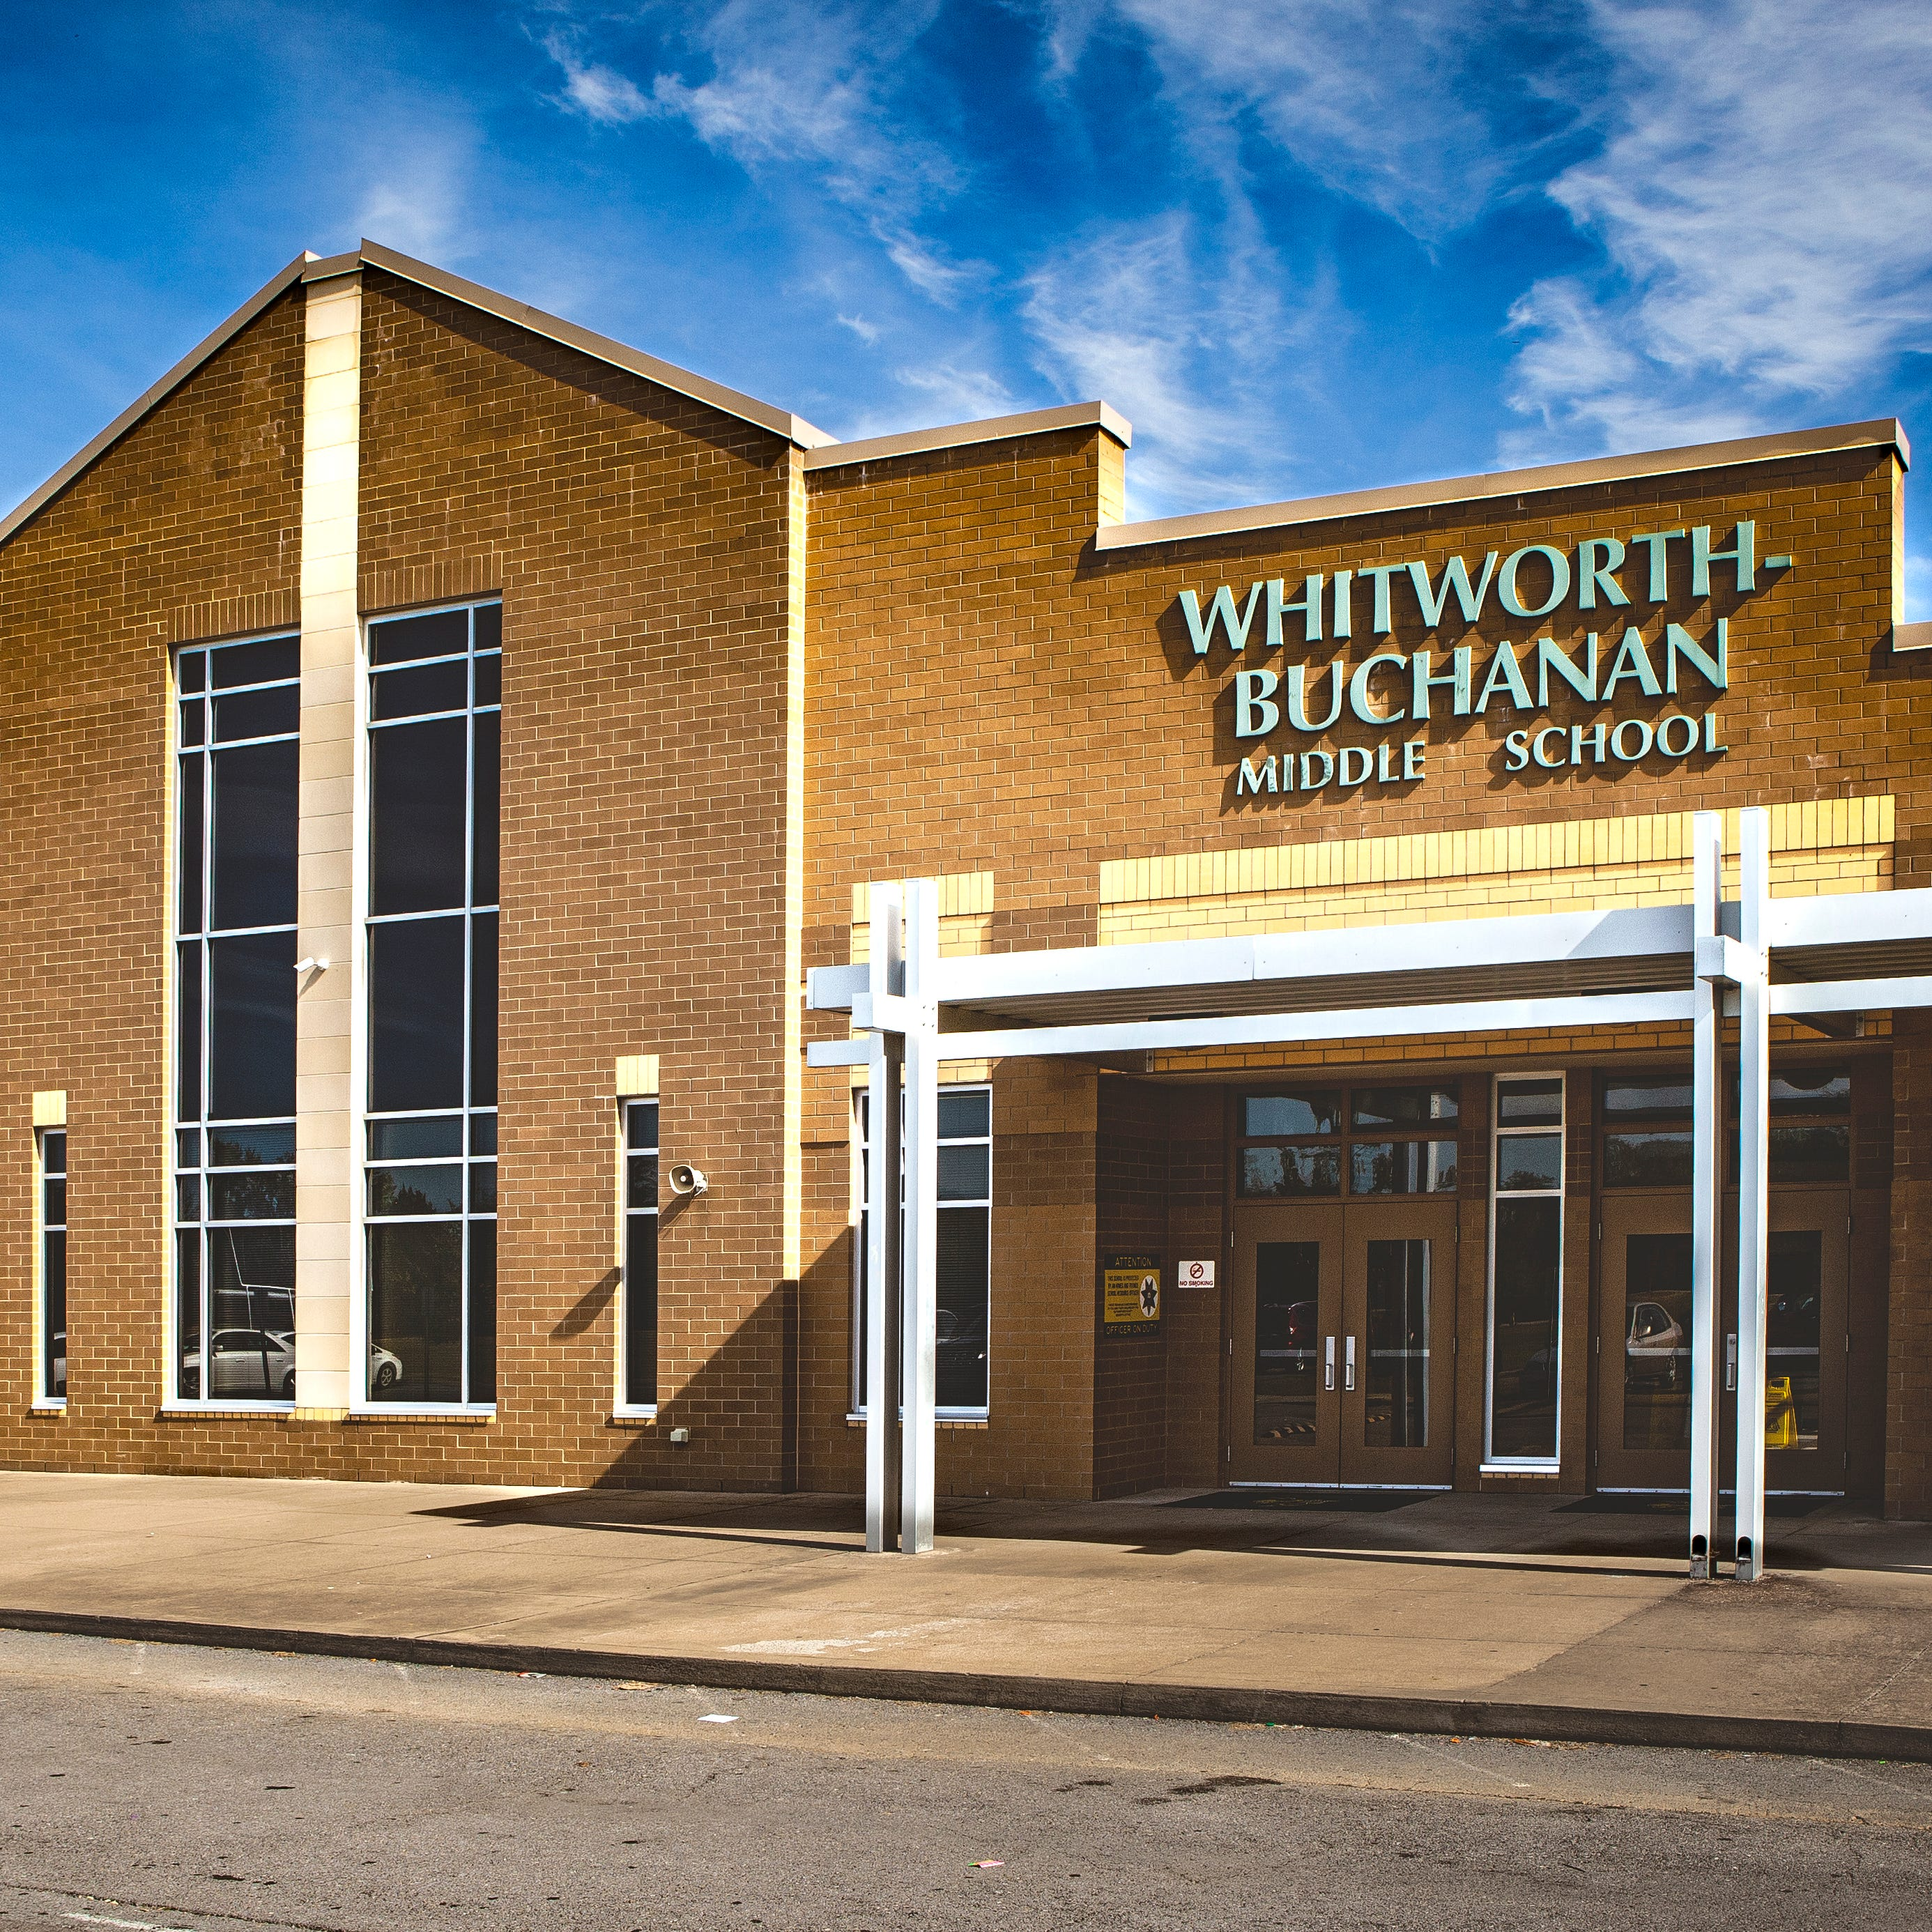 Recent Whitworth-Buchanan Middle threat deemed not credible